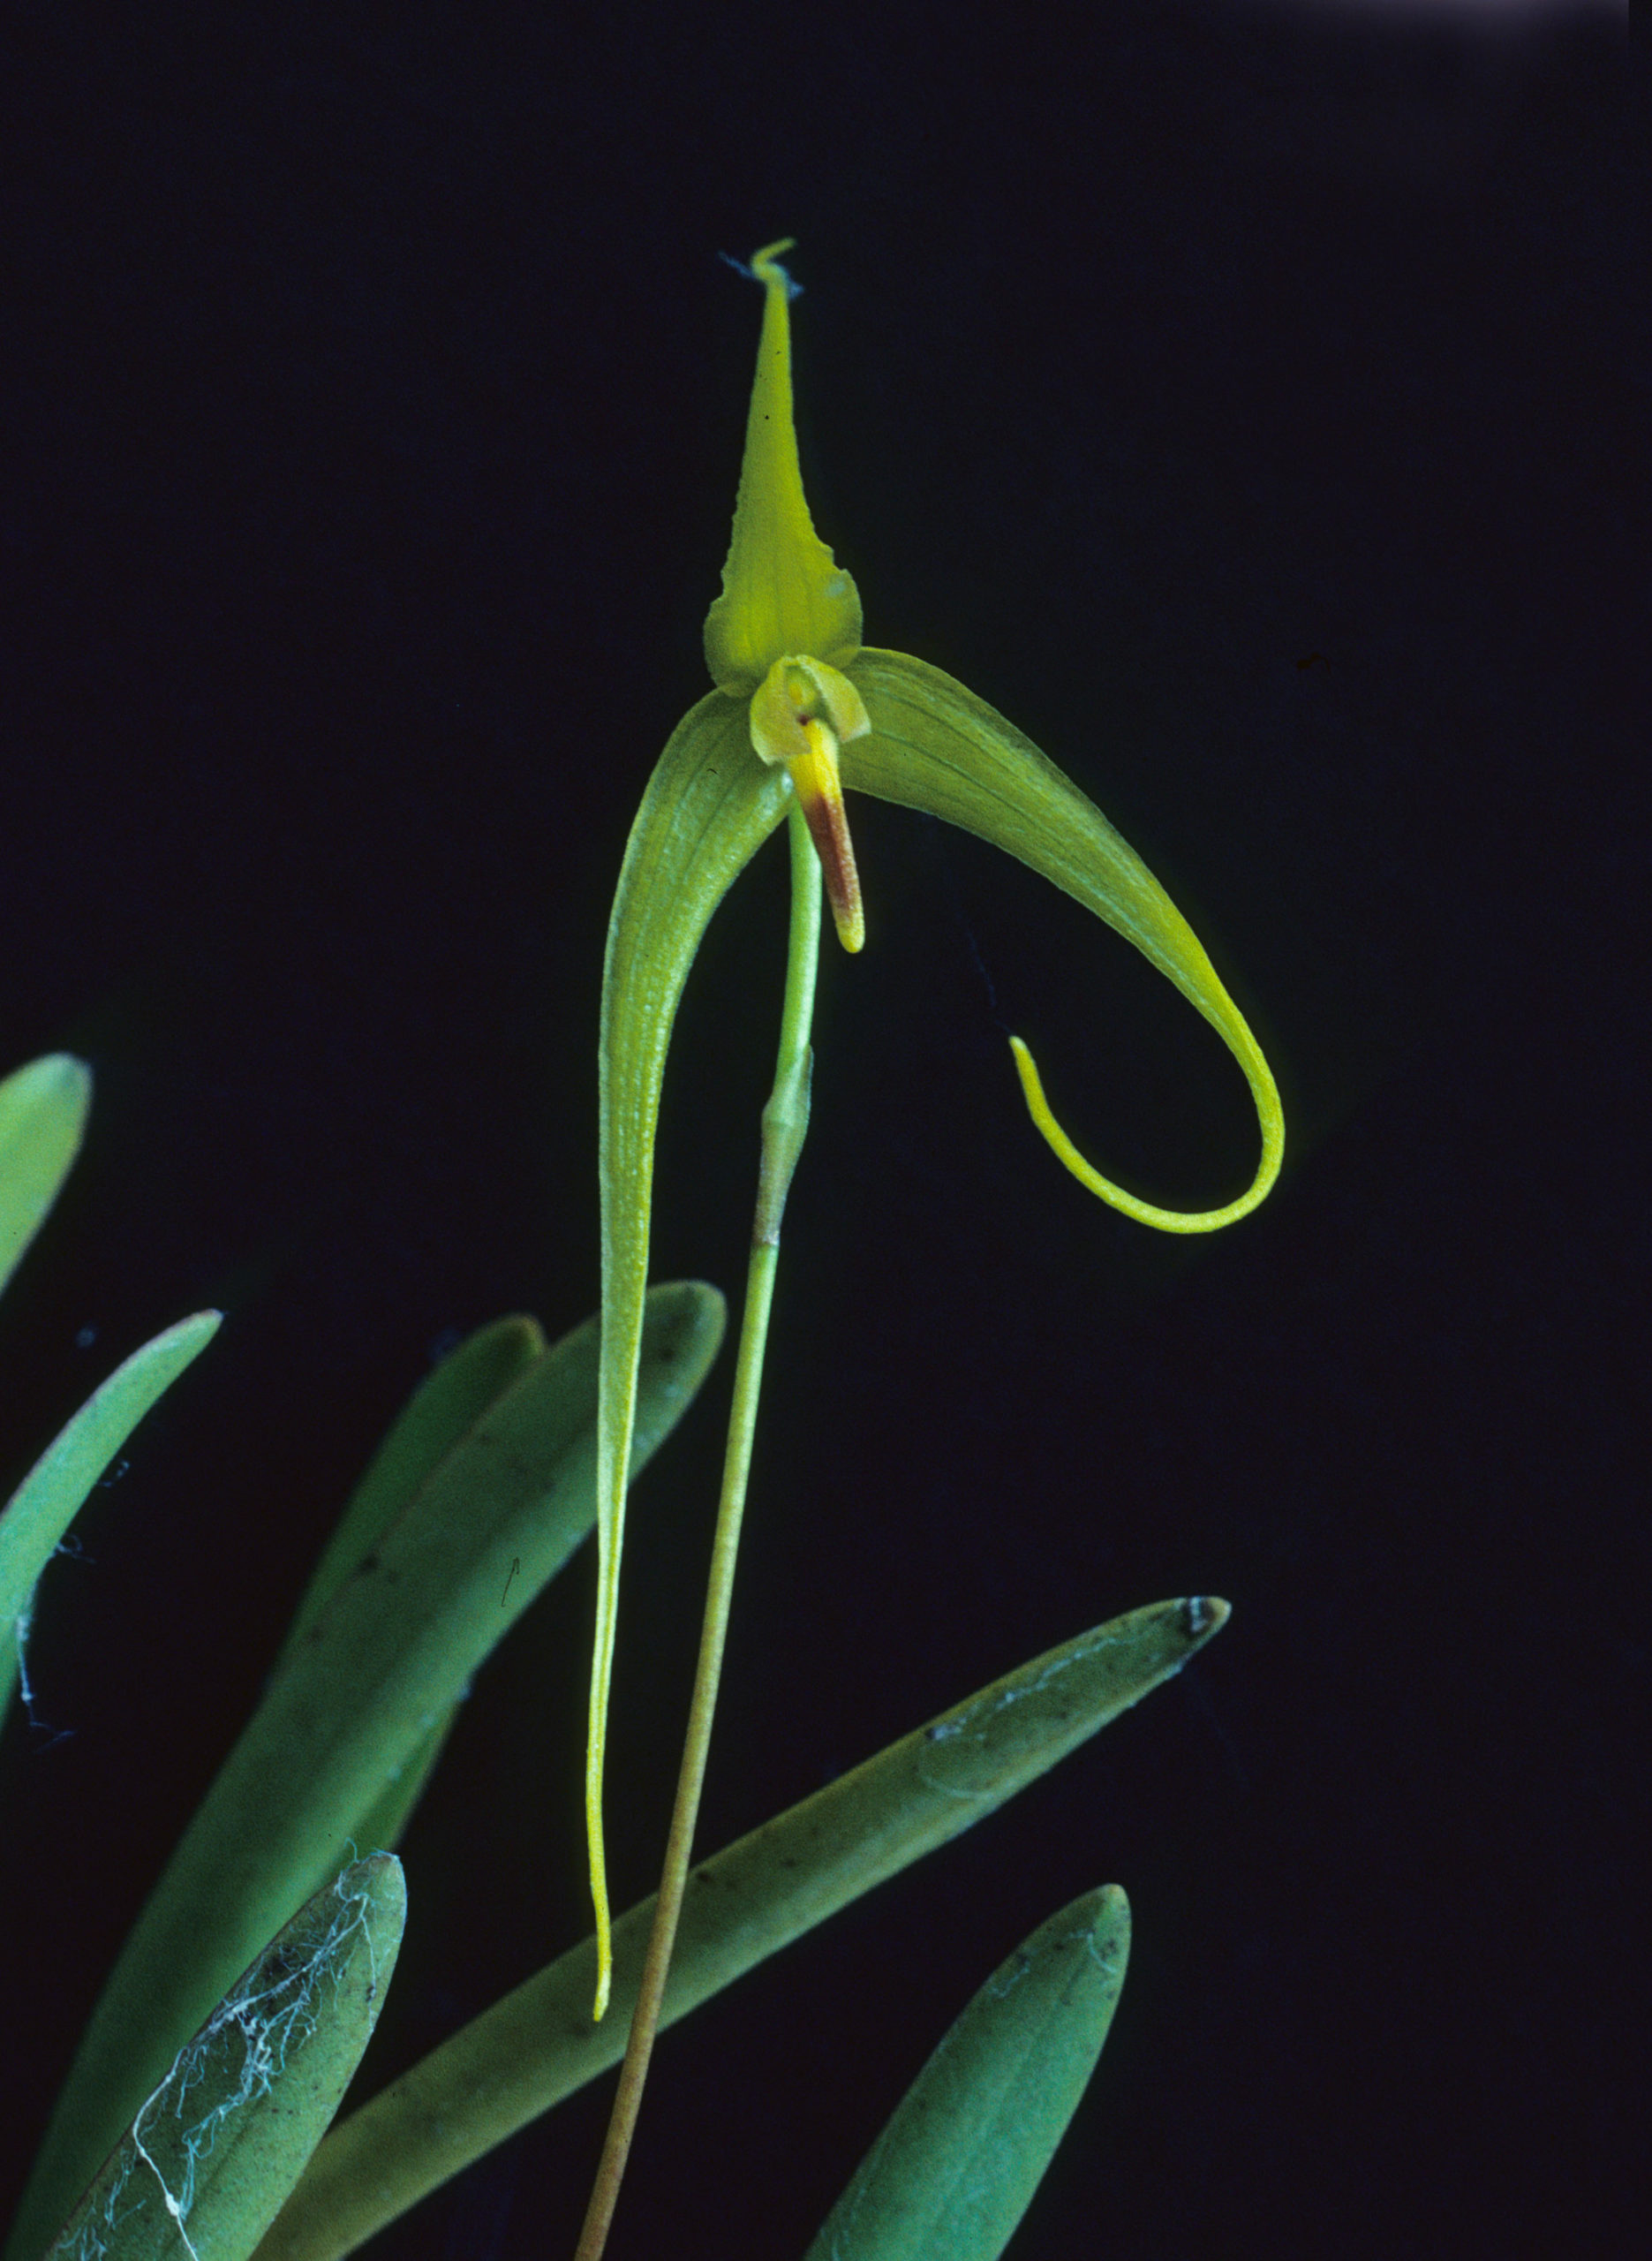 A newly discovered orchid, Bulbophyllum dologlossum. Image by T.M. Reeve.